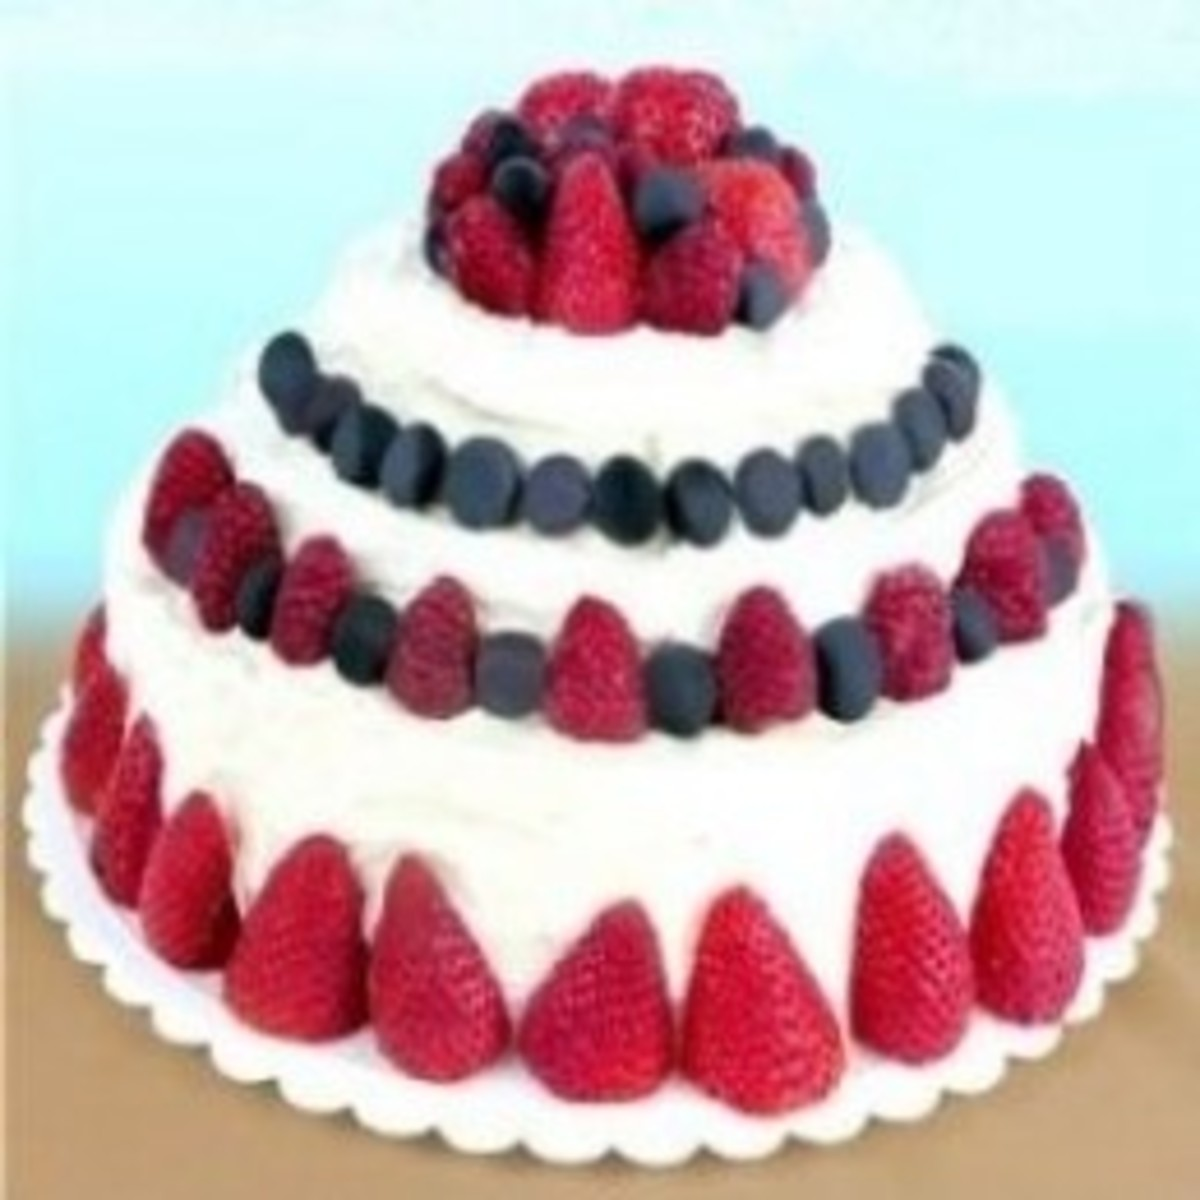 An easy way to make your own 3 tier cake!